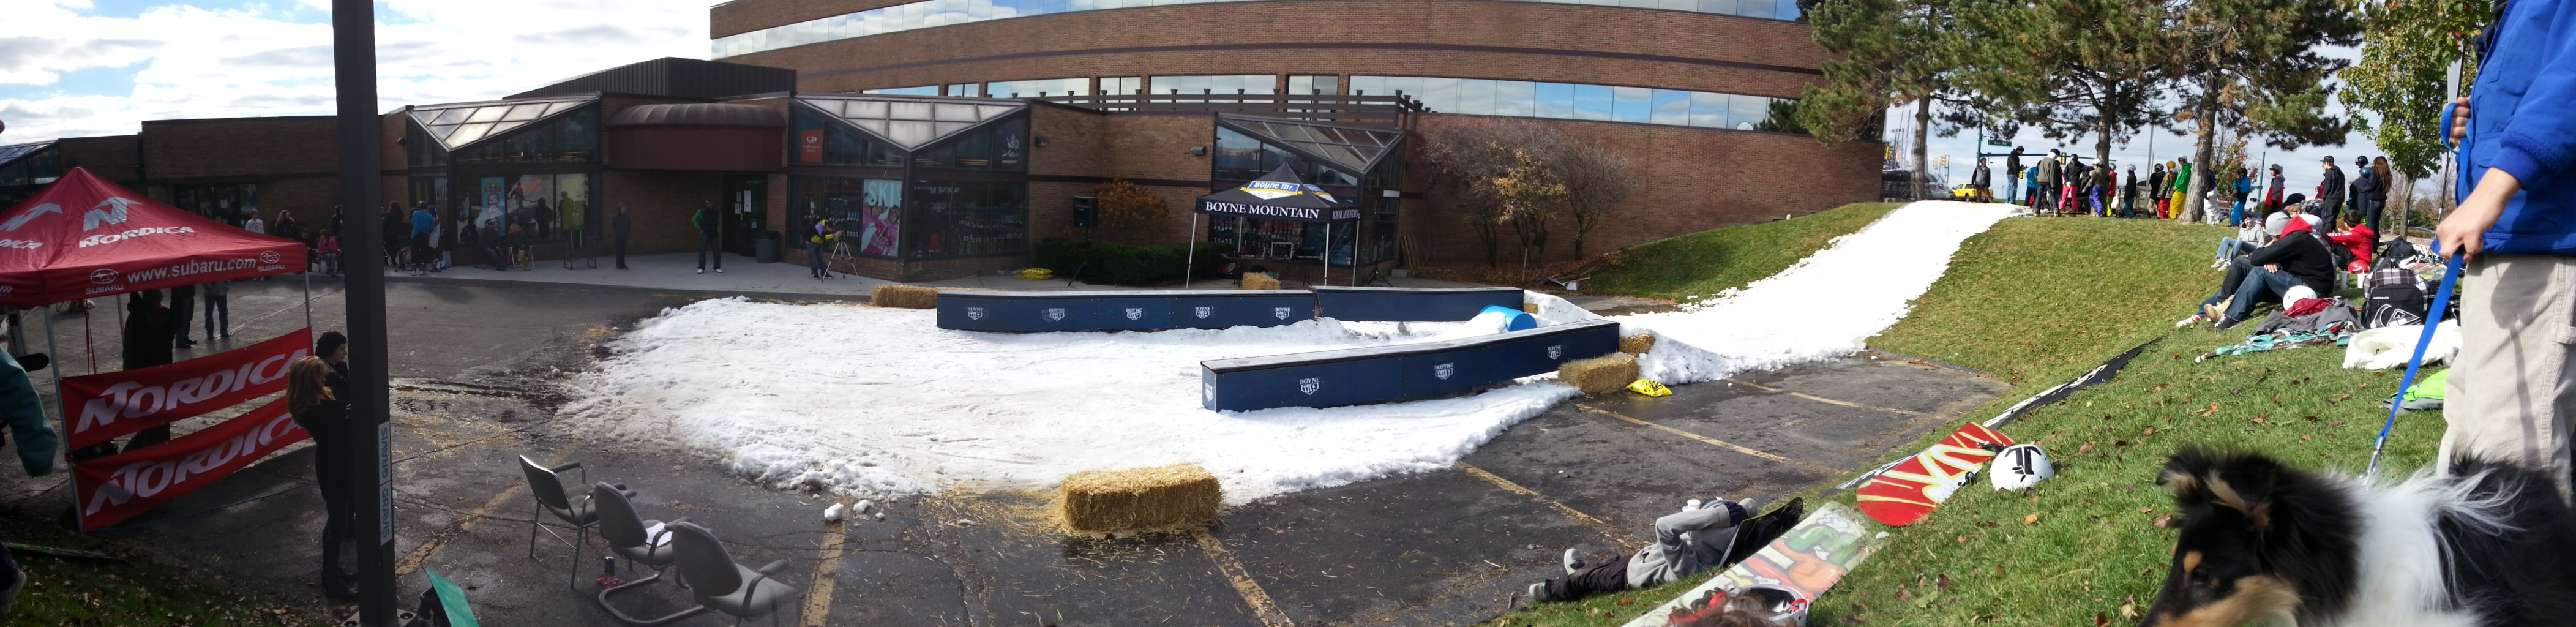 Panoramic view of the Boyne County Sports box rail jam, November 3, 2012